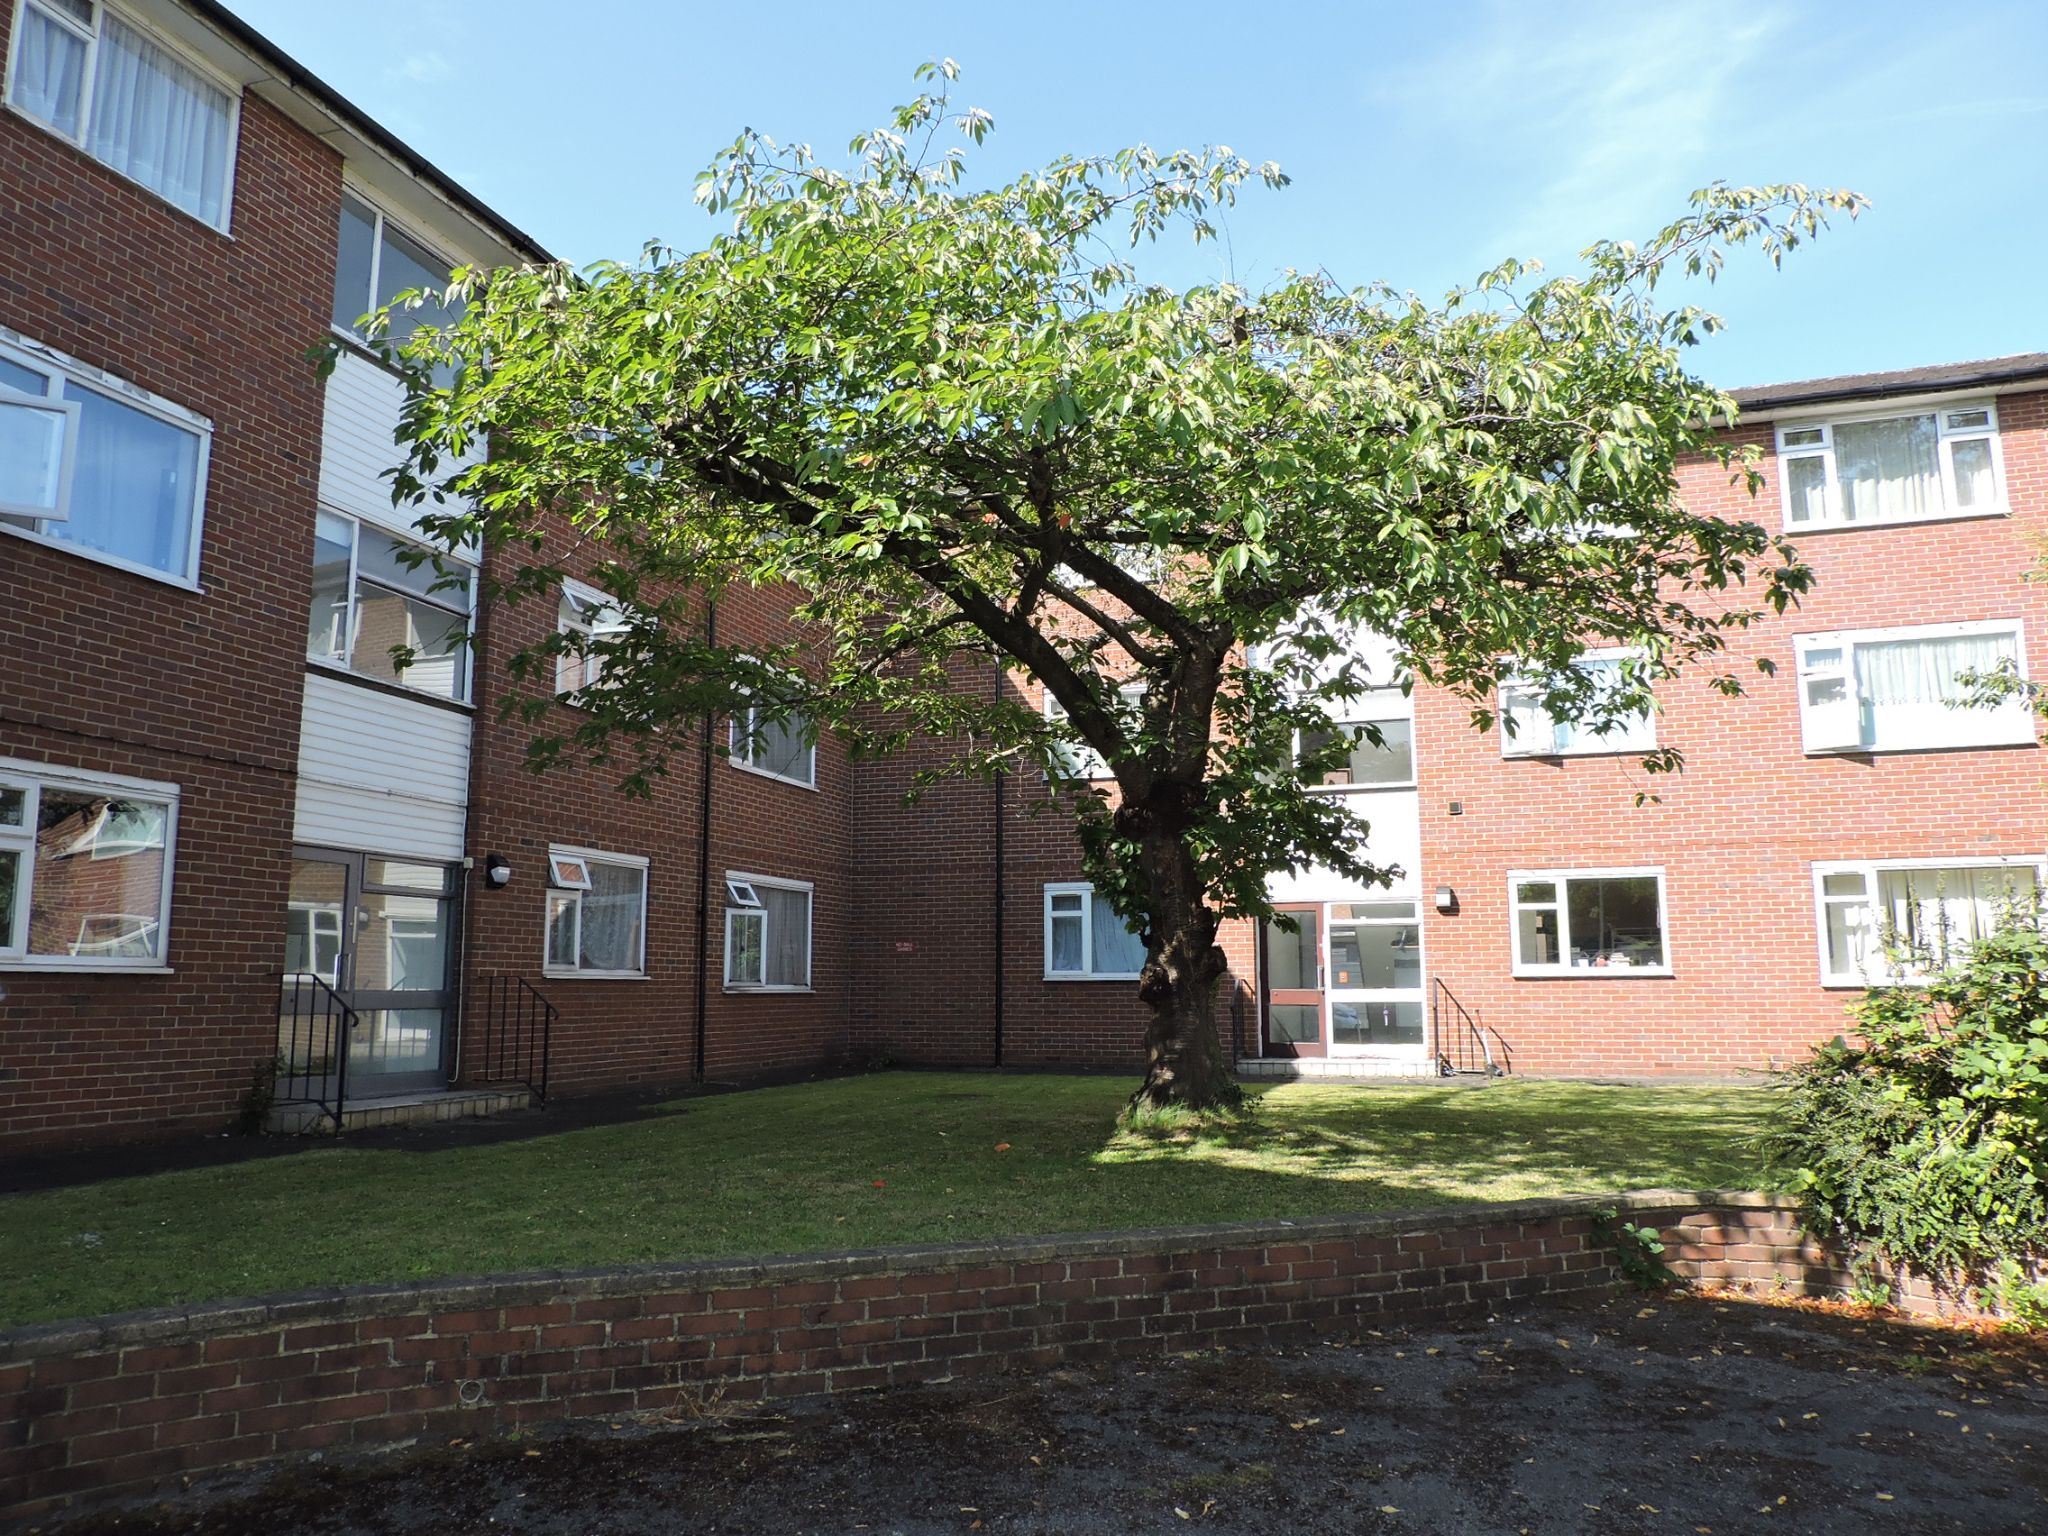 2 bedroom ground floor flat/apartment Let Agreed in New Malden - Property photograph